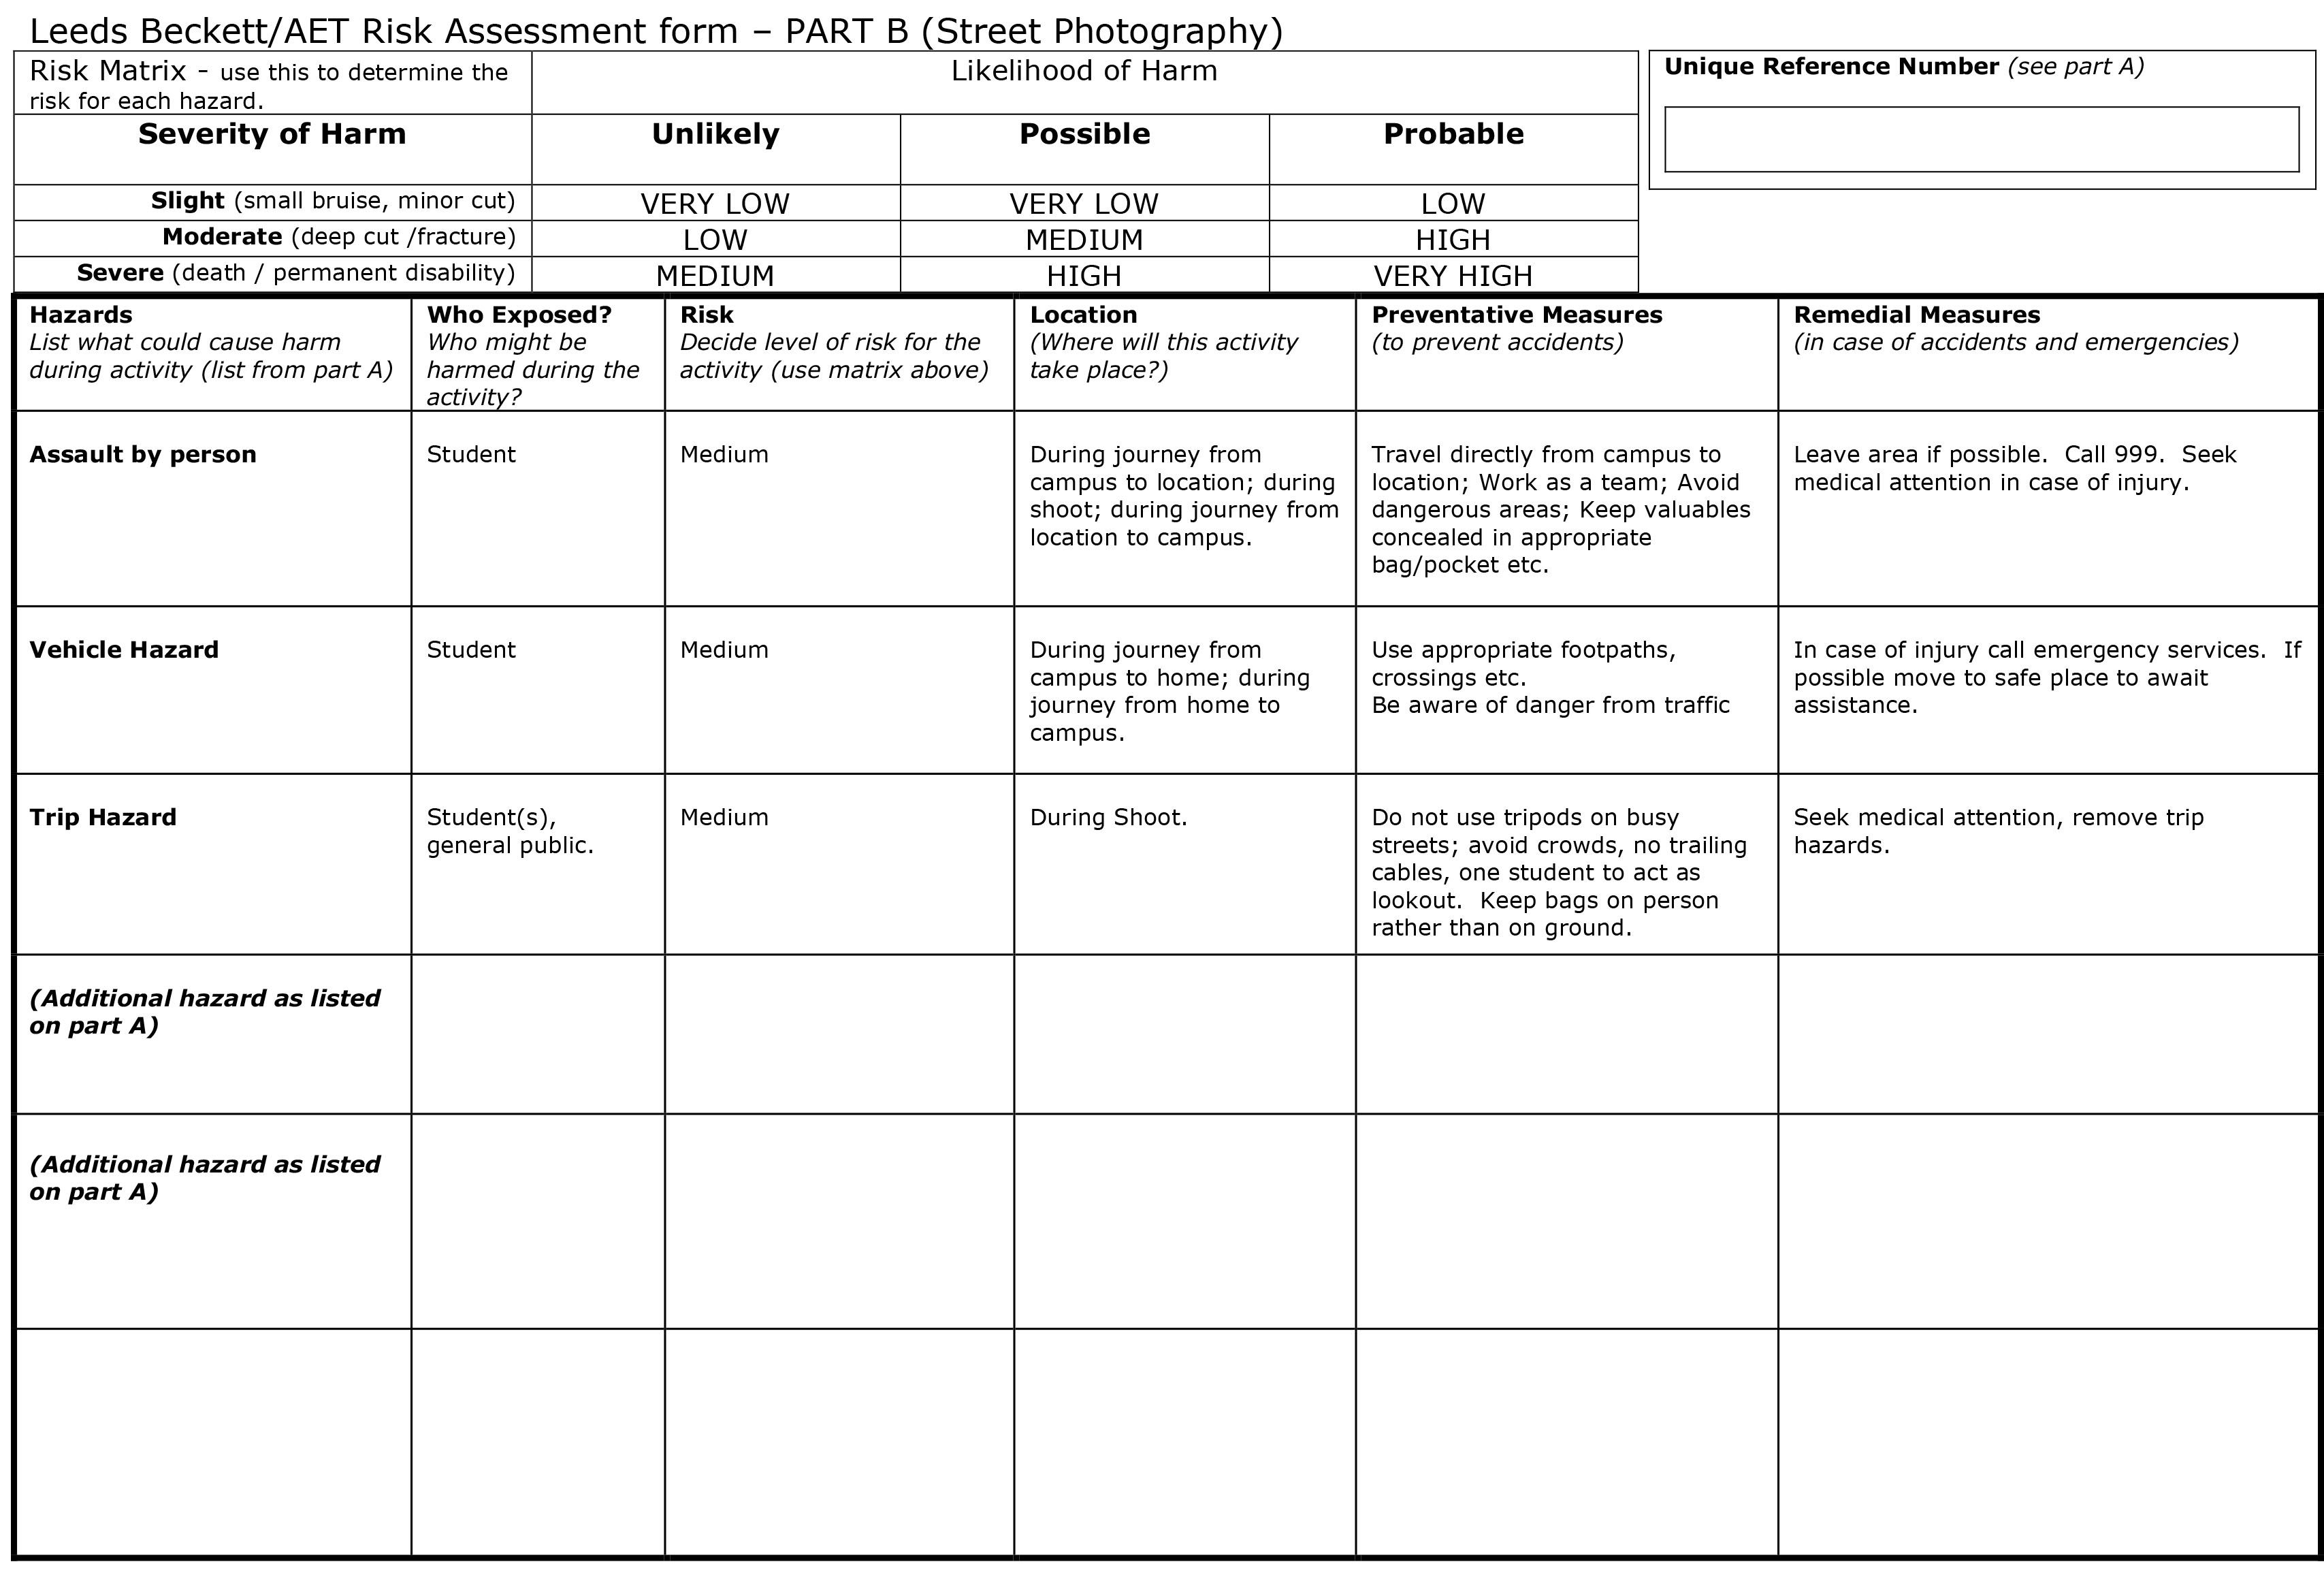 Here Is Our Pre Filled Out Part B Risk Assessment Form For Street